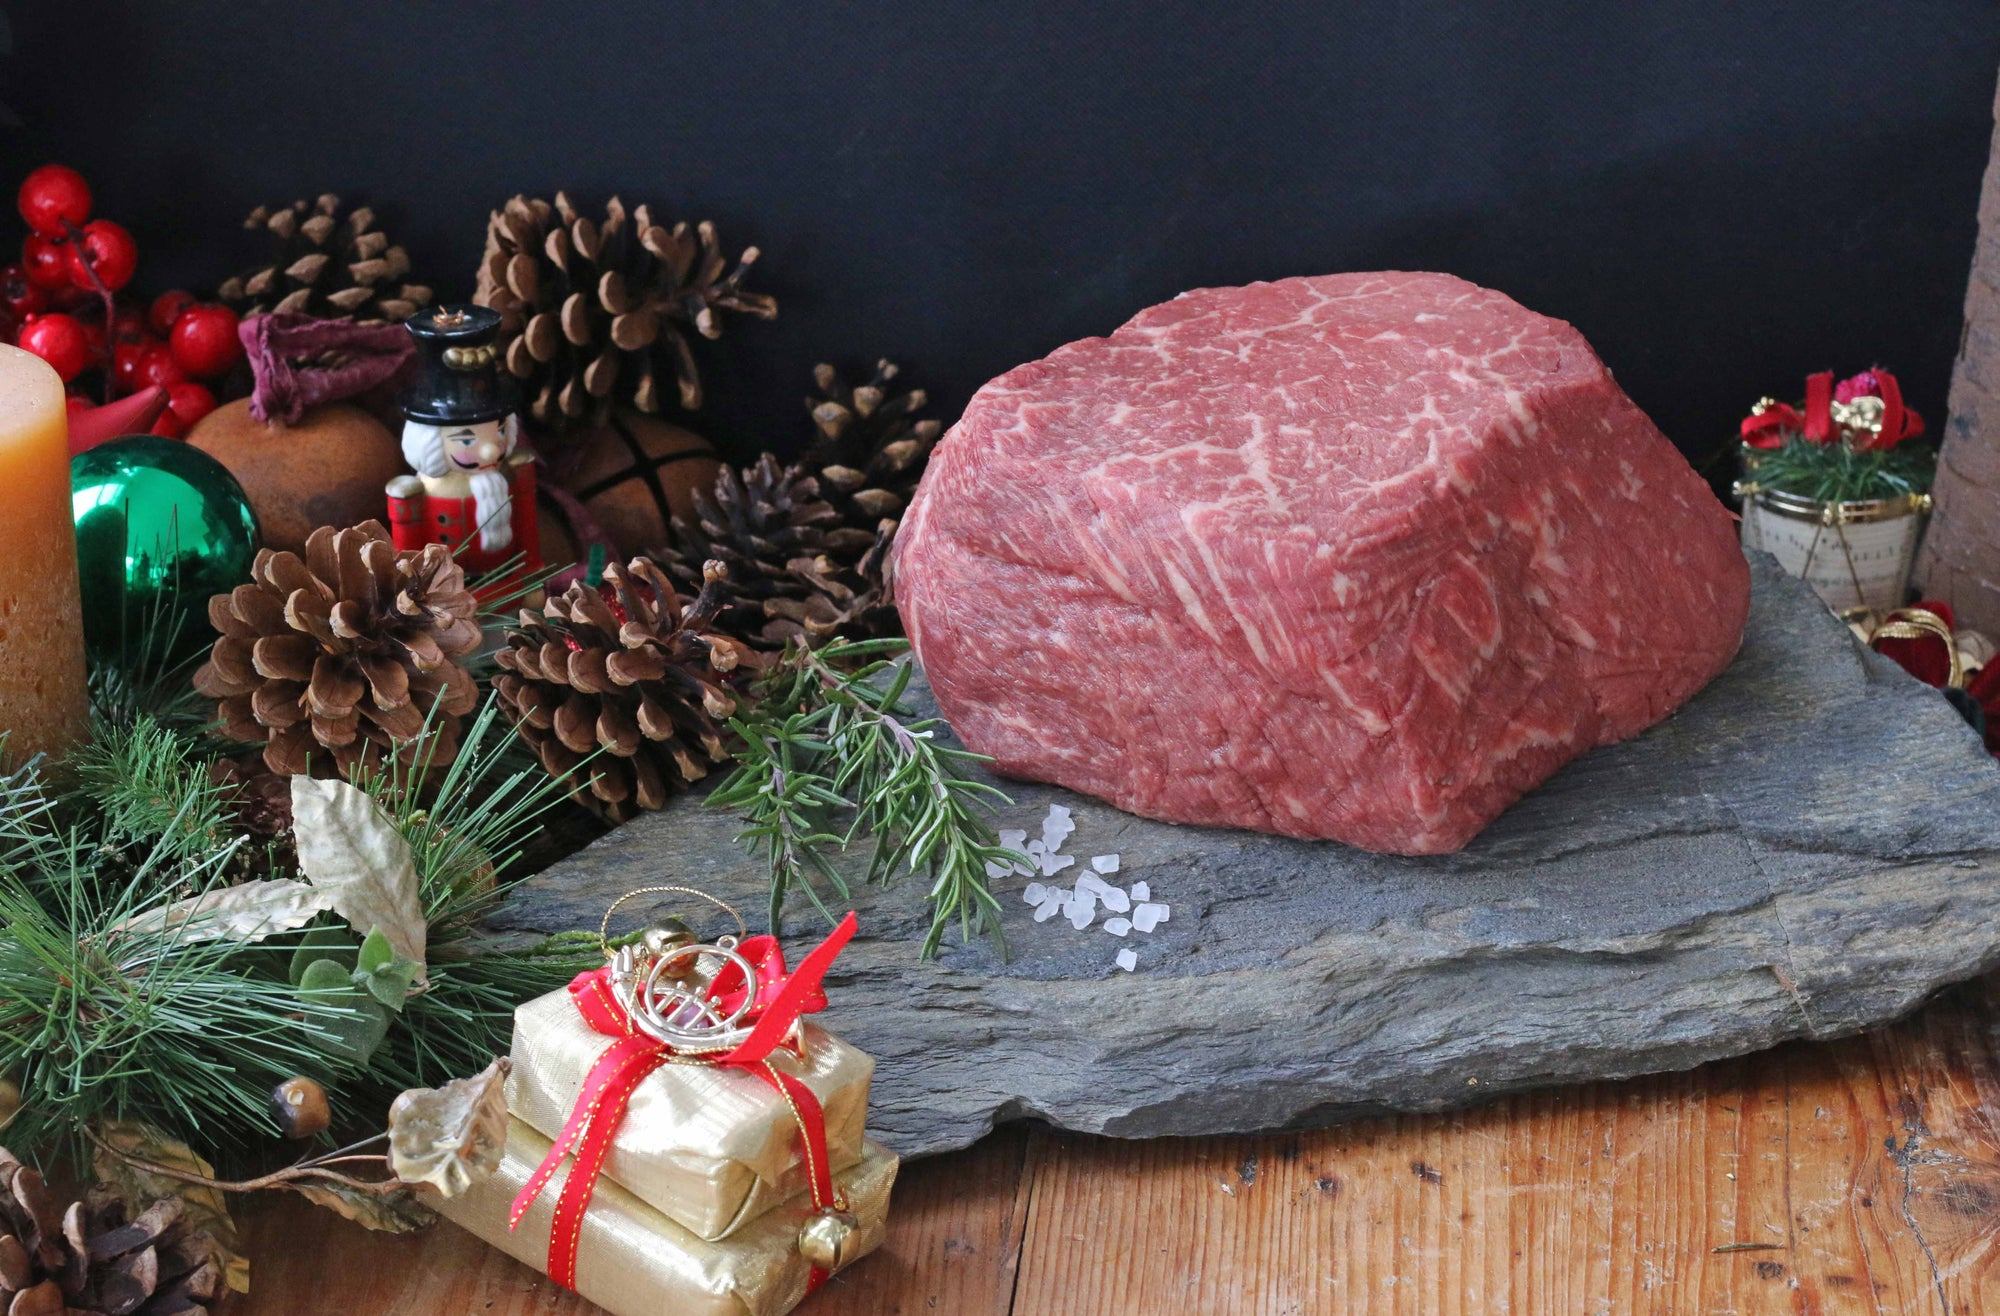 How to Serve 100% Full-Blood Wagyu Beef for the Holidays